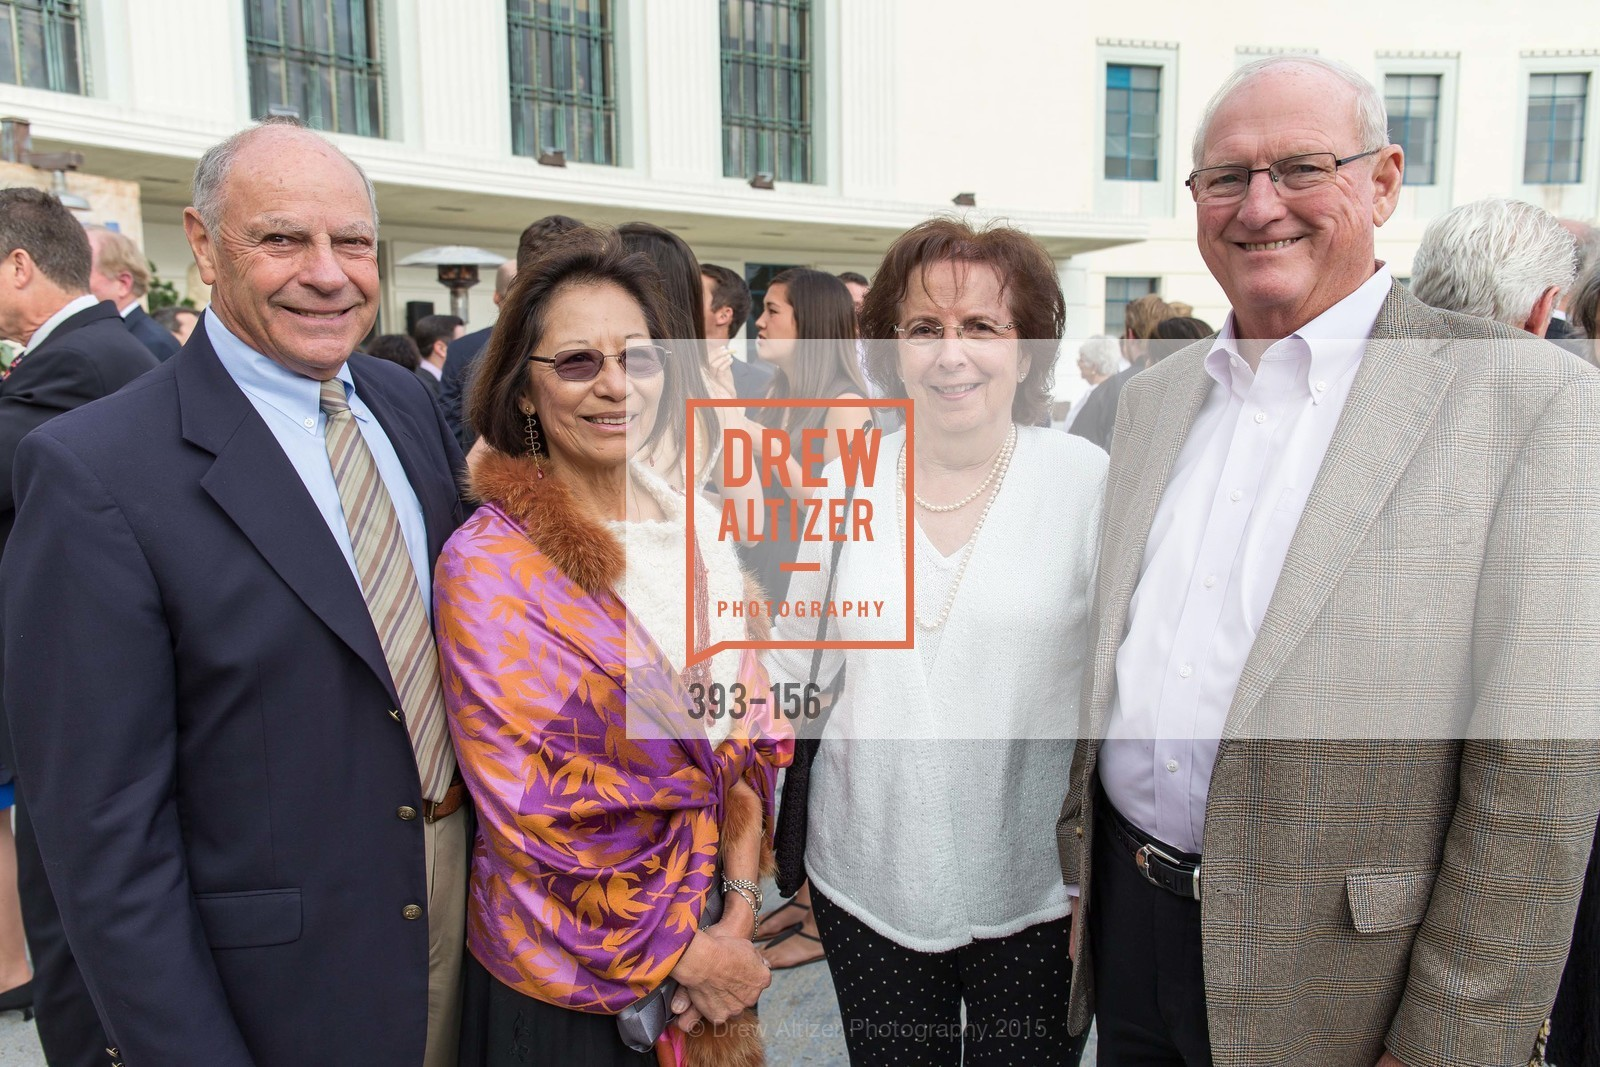 Michael Pinto, Meili Pinto, Delfie Schrimp, Roger Schrimp, California State Parks Foundation's GOLDEN POPPY AWARDS, Treasure Island Building One. 1 Avenue of the Palms, June 5th, 2015,Drew Altizer, Drew Altizer Photography, full-service agency, private events, San Francisco photographer, photographer california